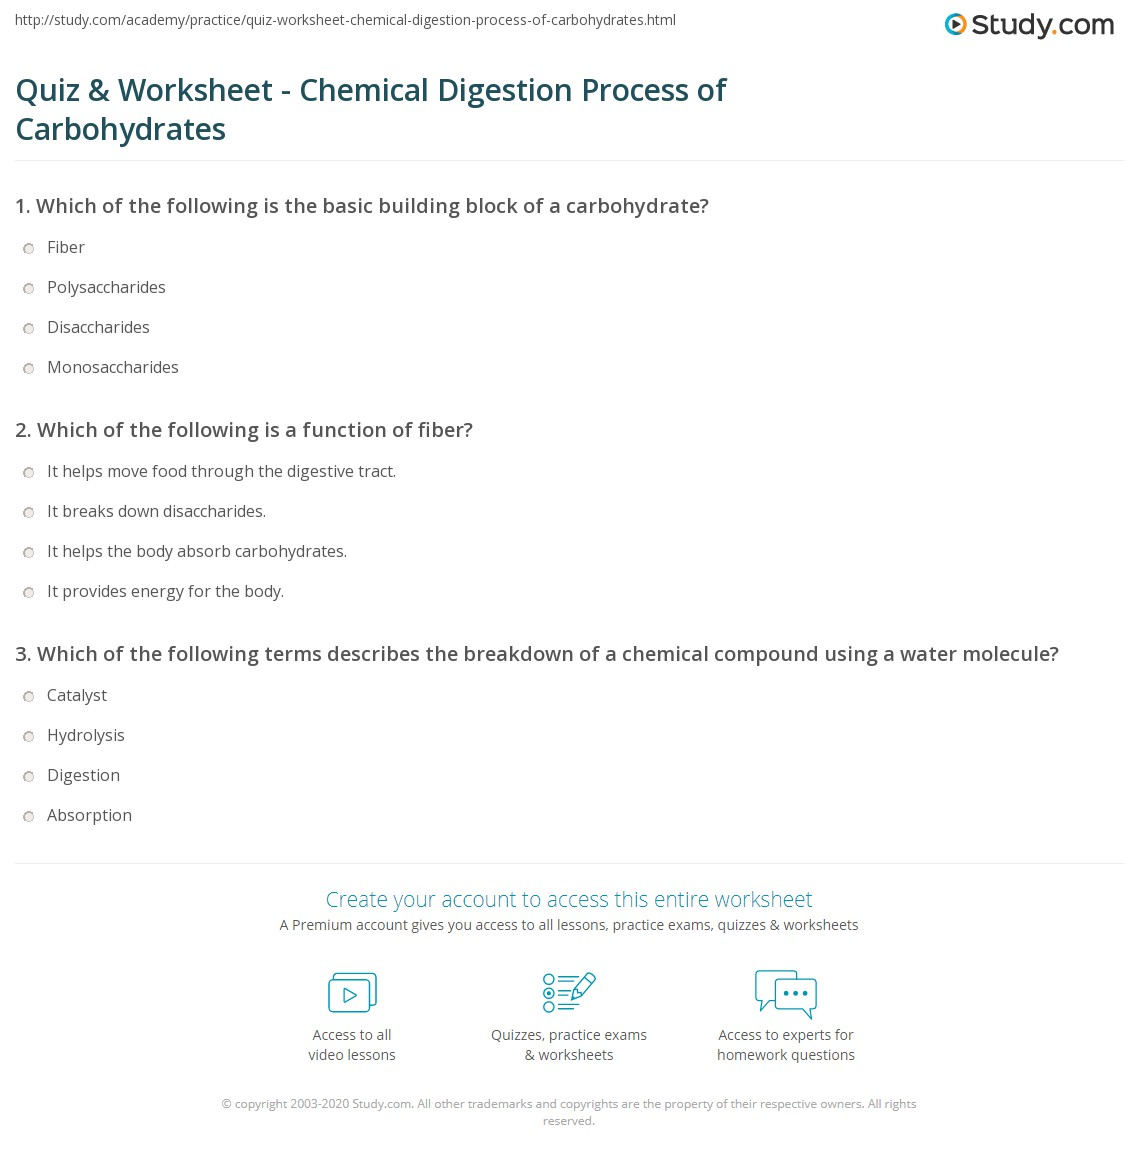 Quiz Worksheet Chemical Digestion Process Of Carbohydrates